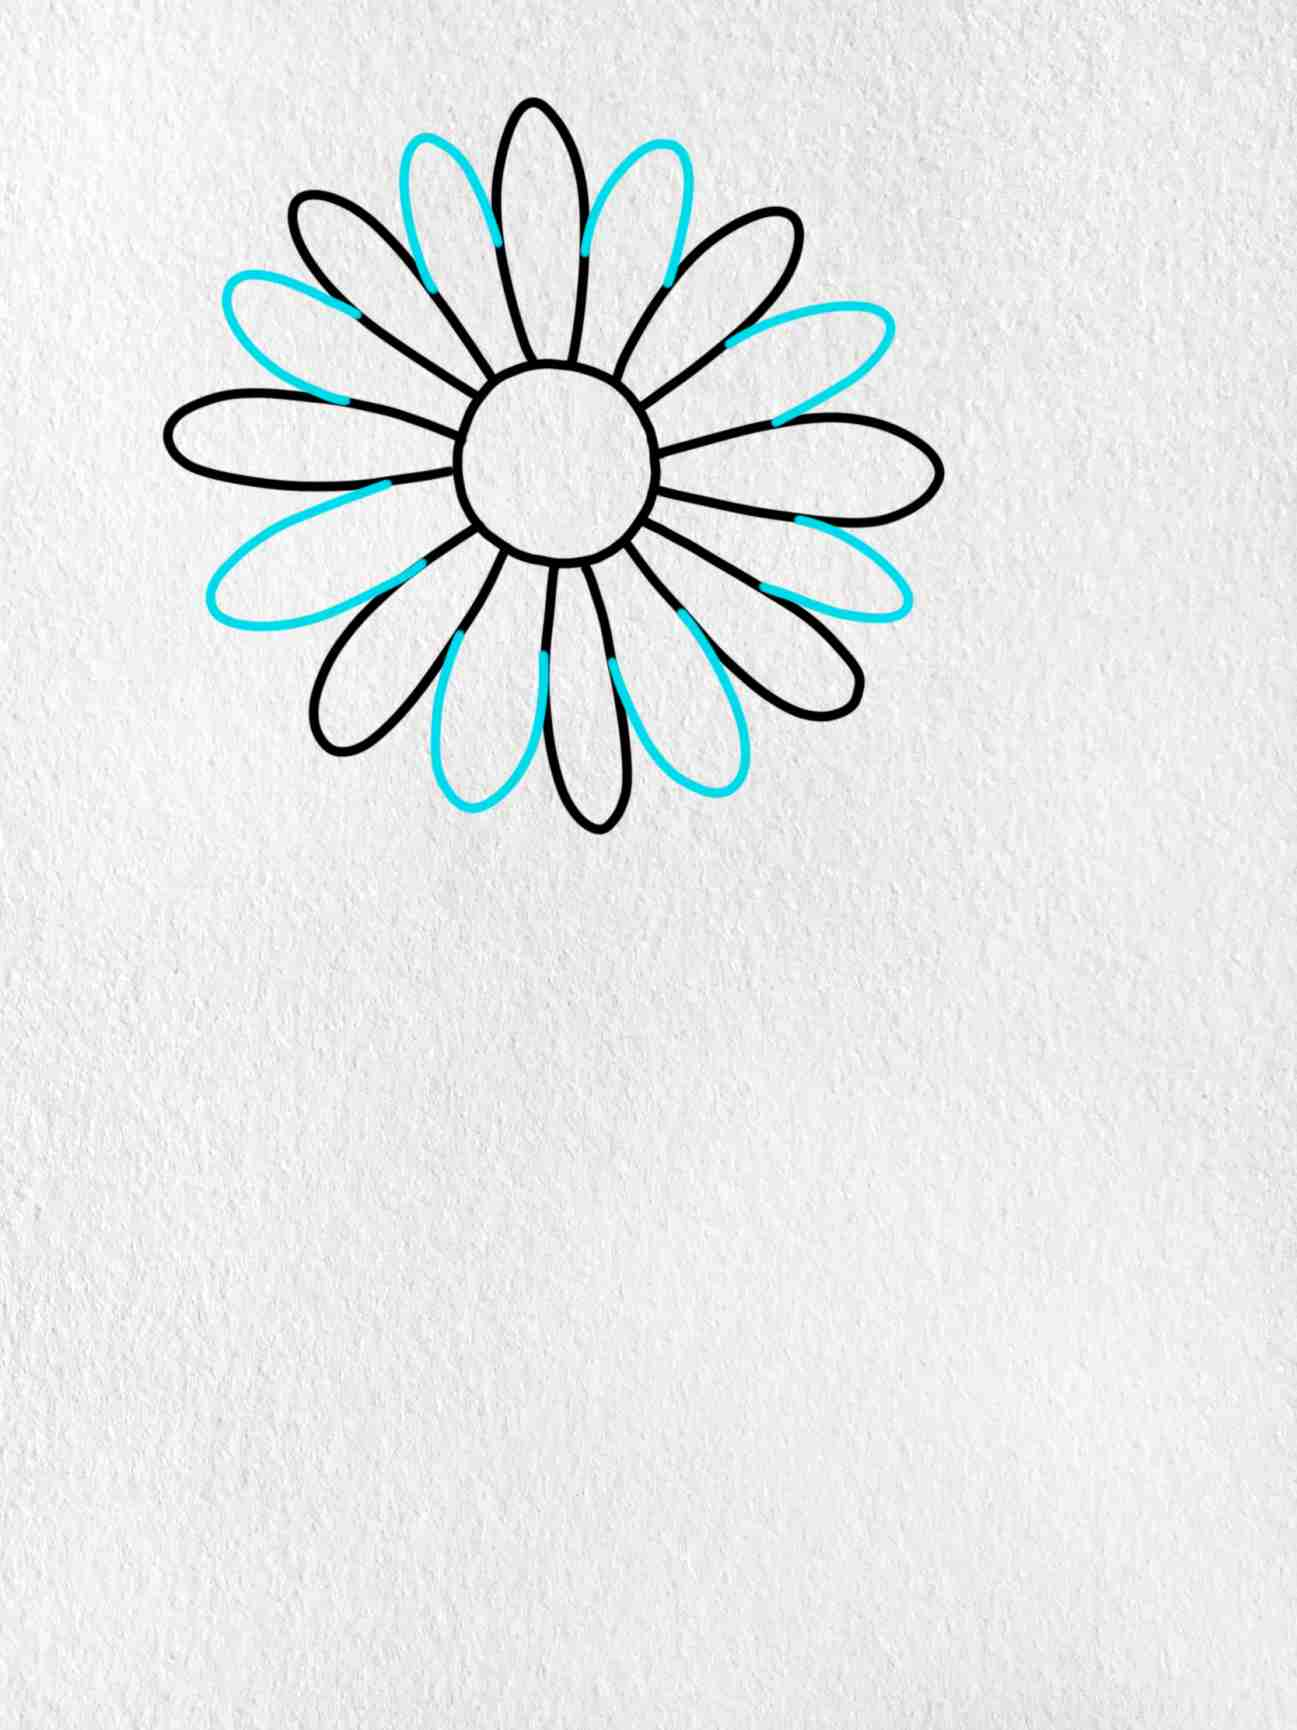 How To Draw A Daisy Flower: Step 3